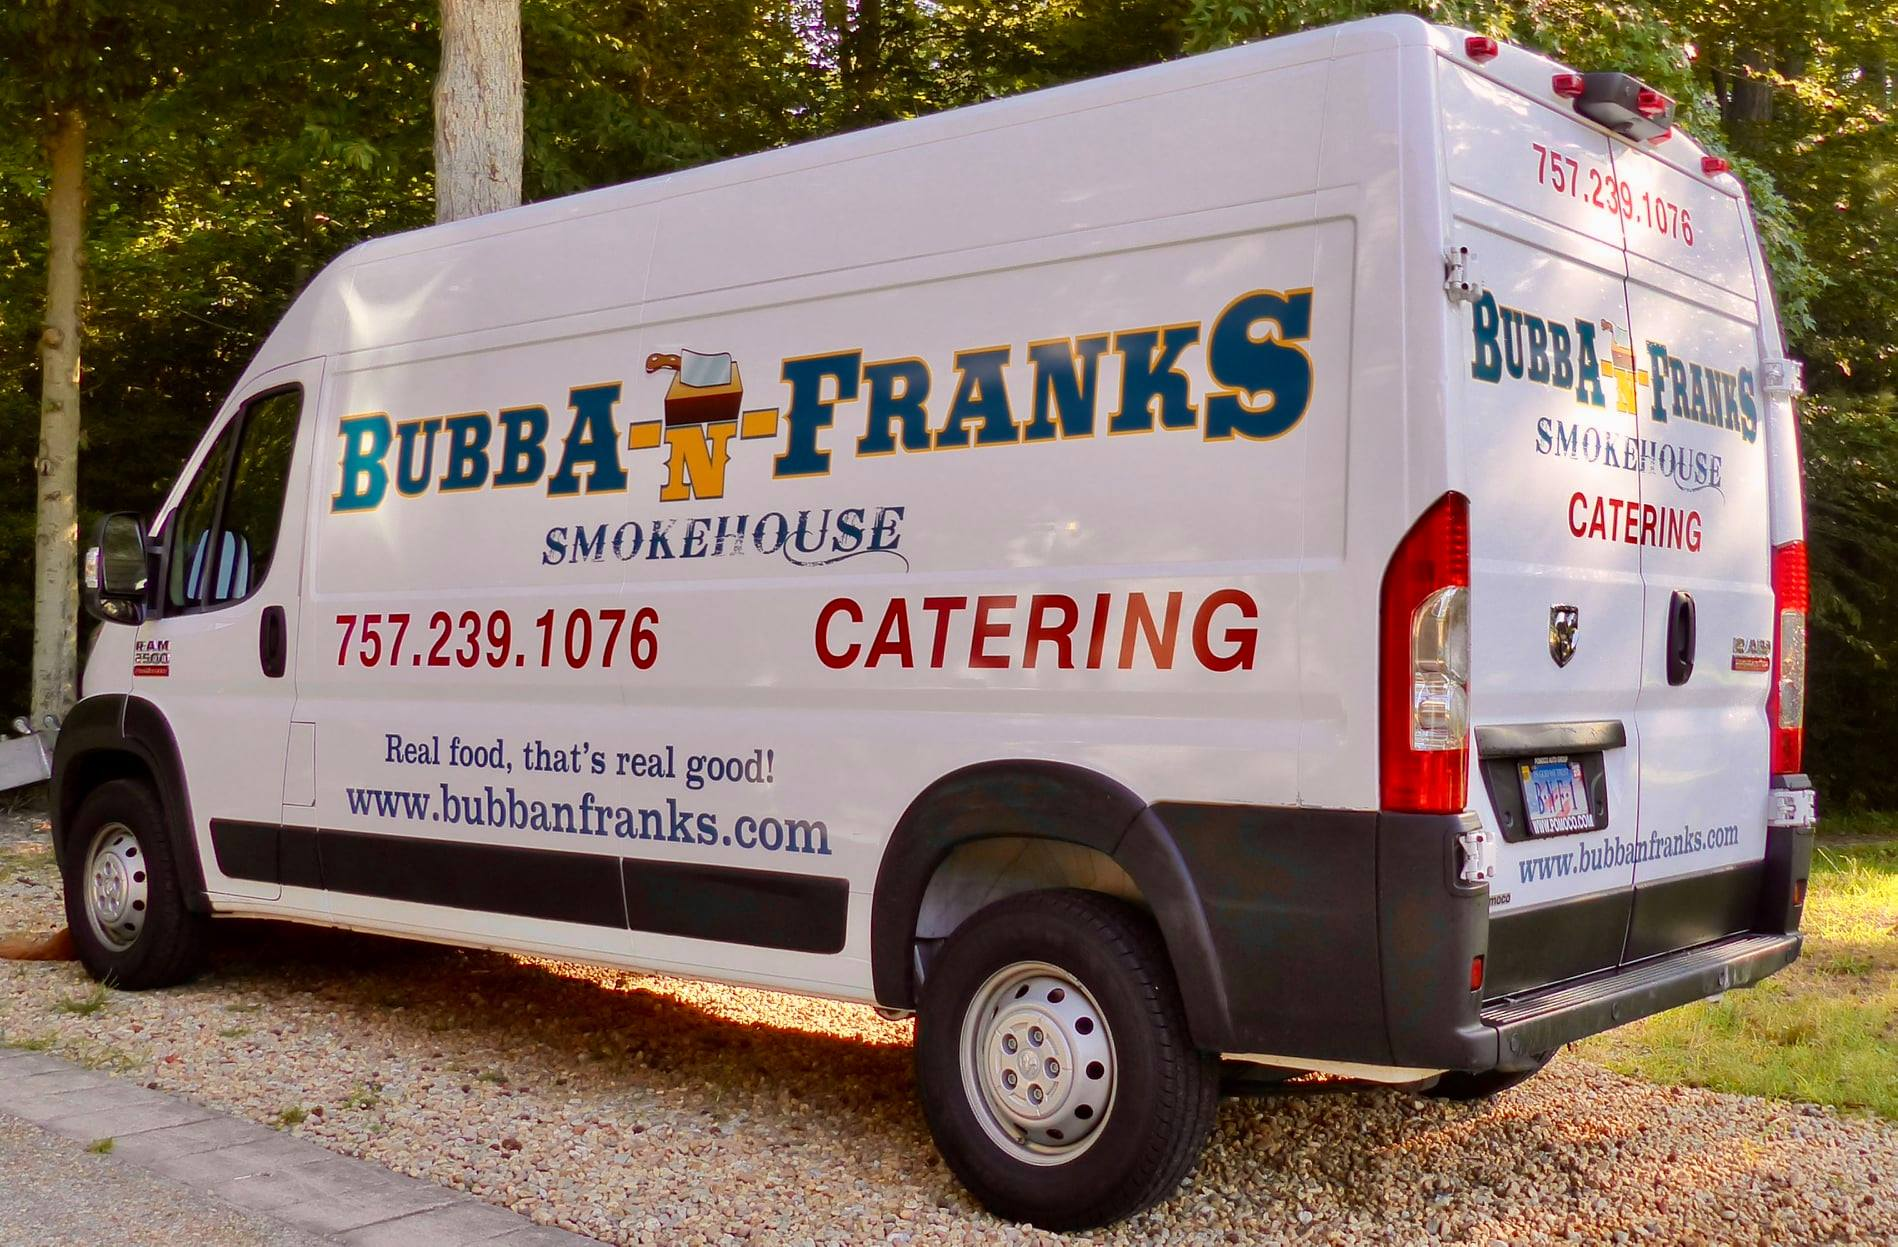 Bubba N Franks Catering Van